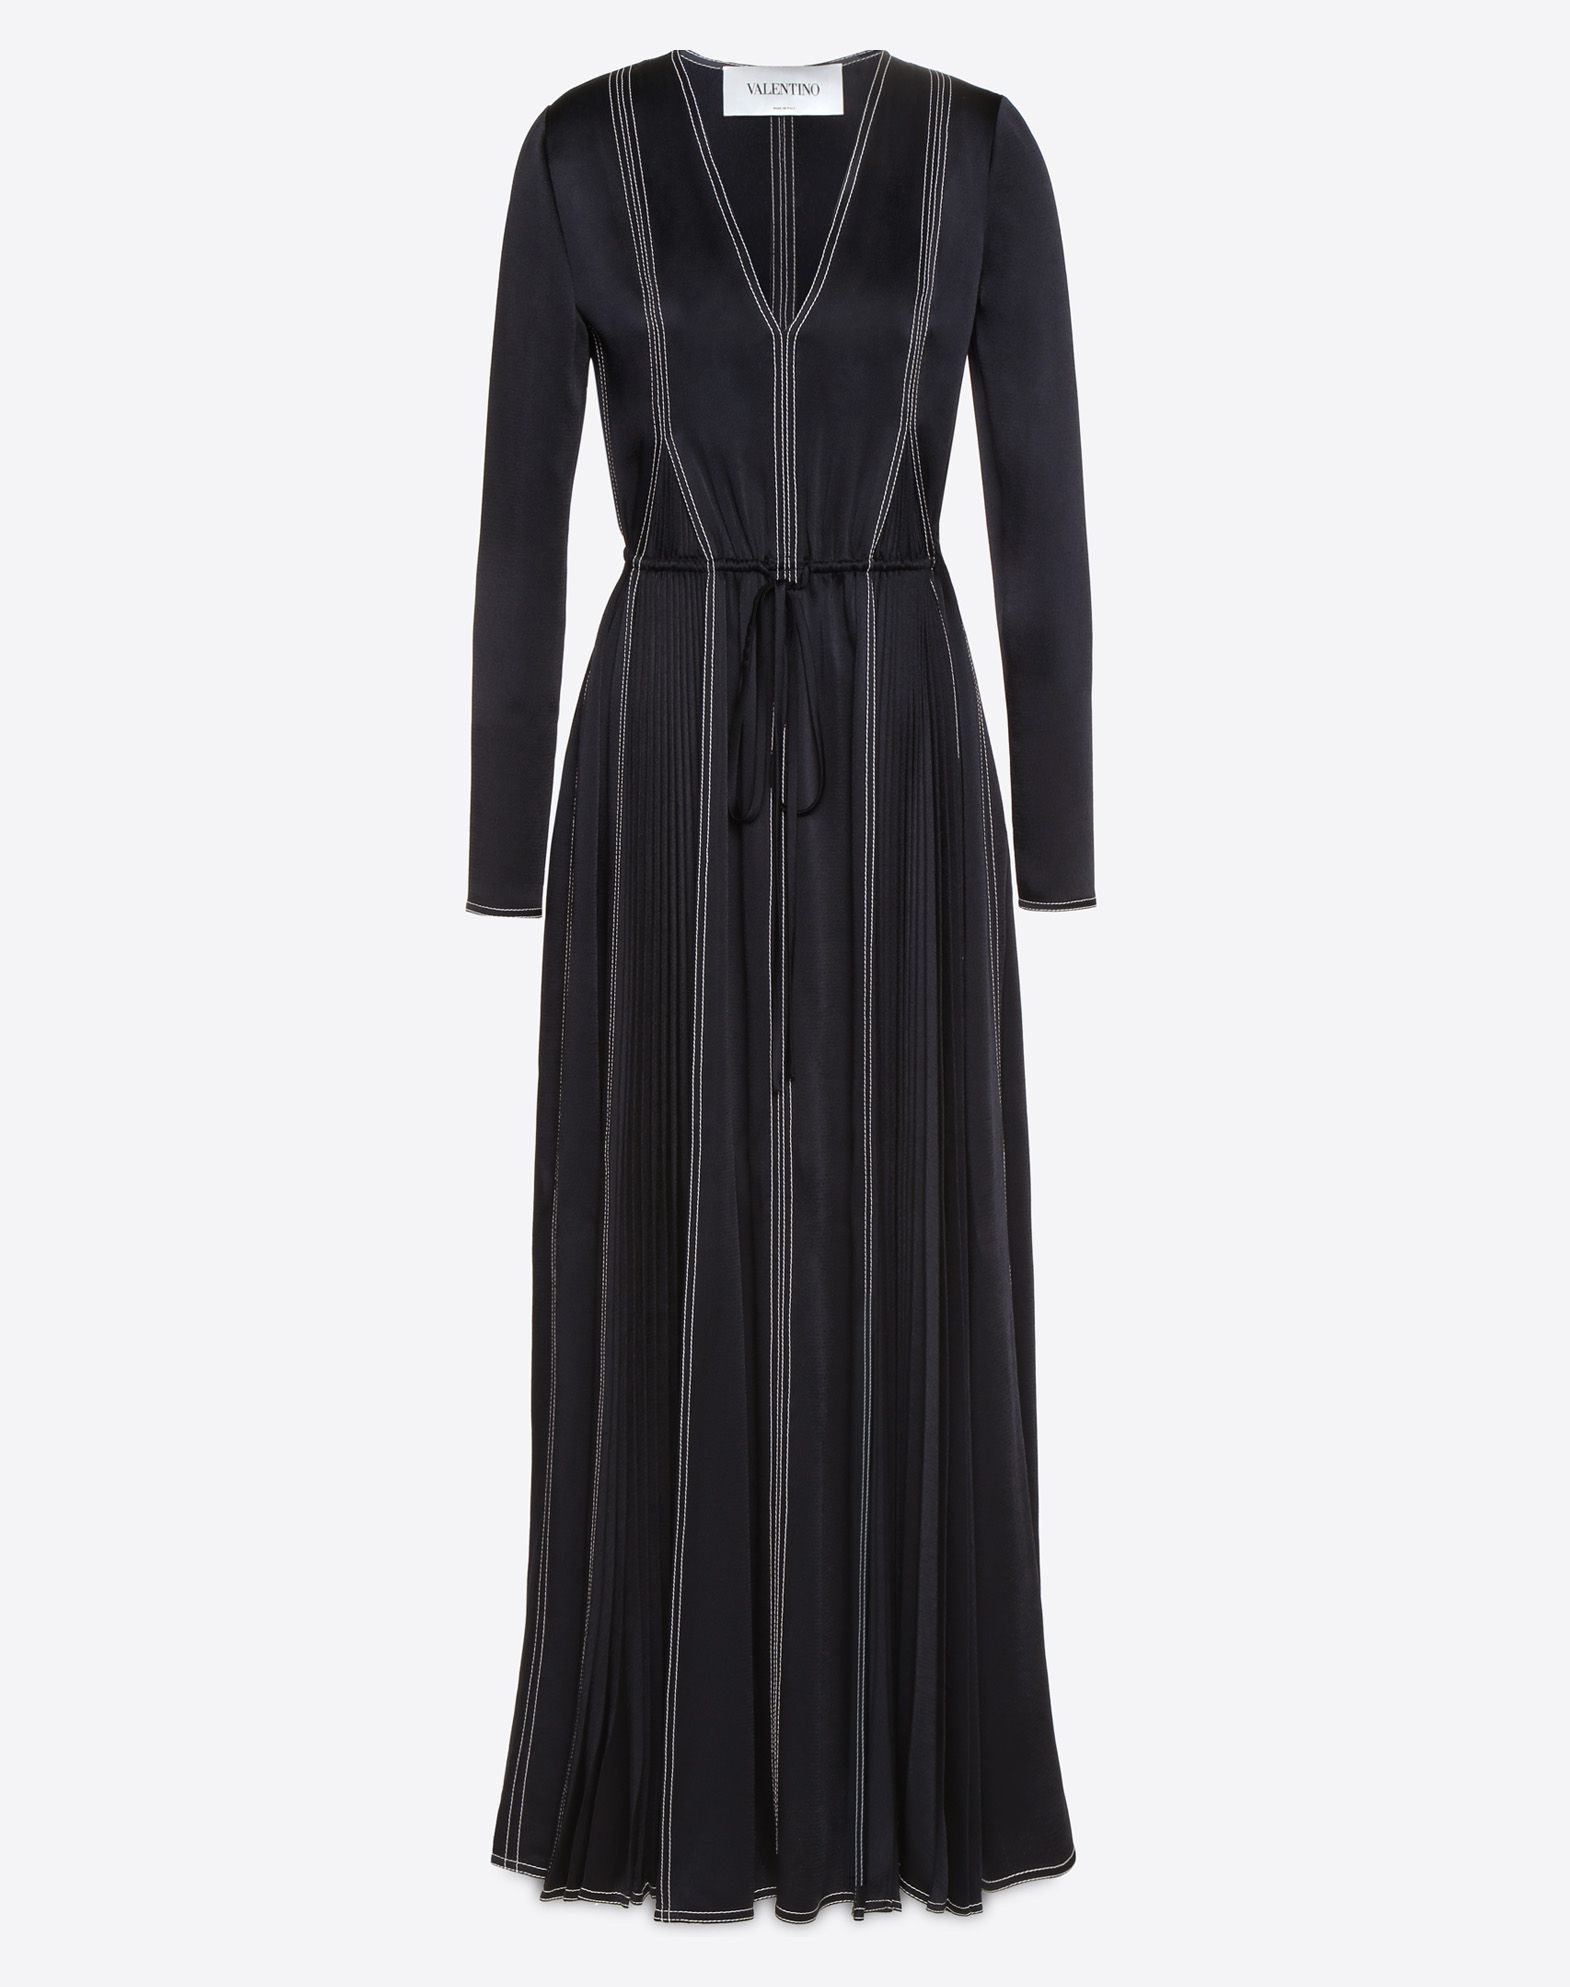 Buy Cheap Pictures Black drawstring dress Valentino Clearance The Cheapest 677ipHCmb